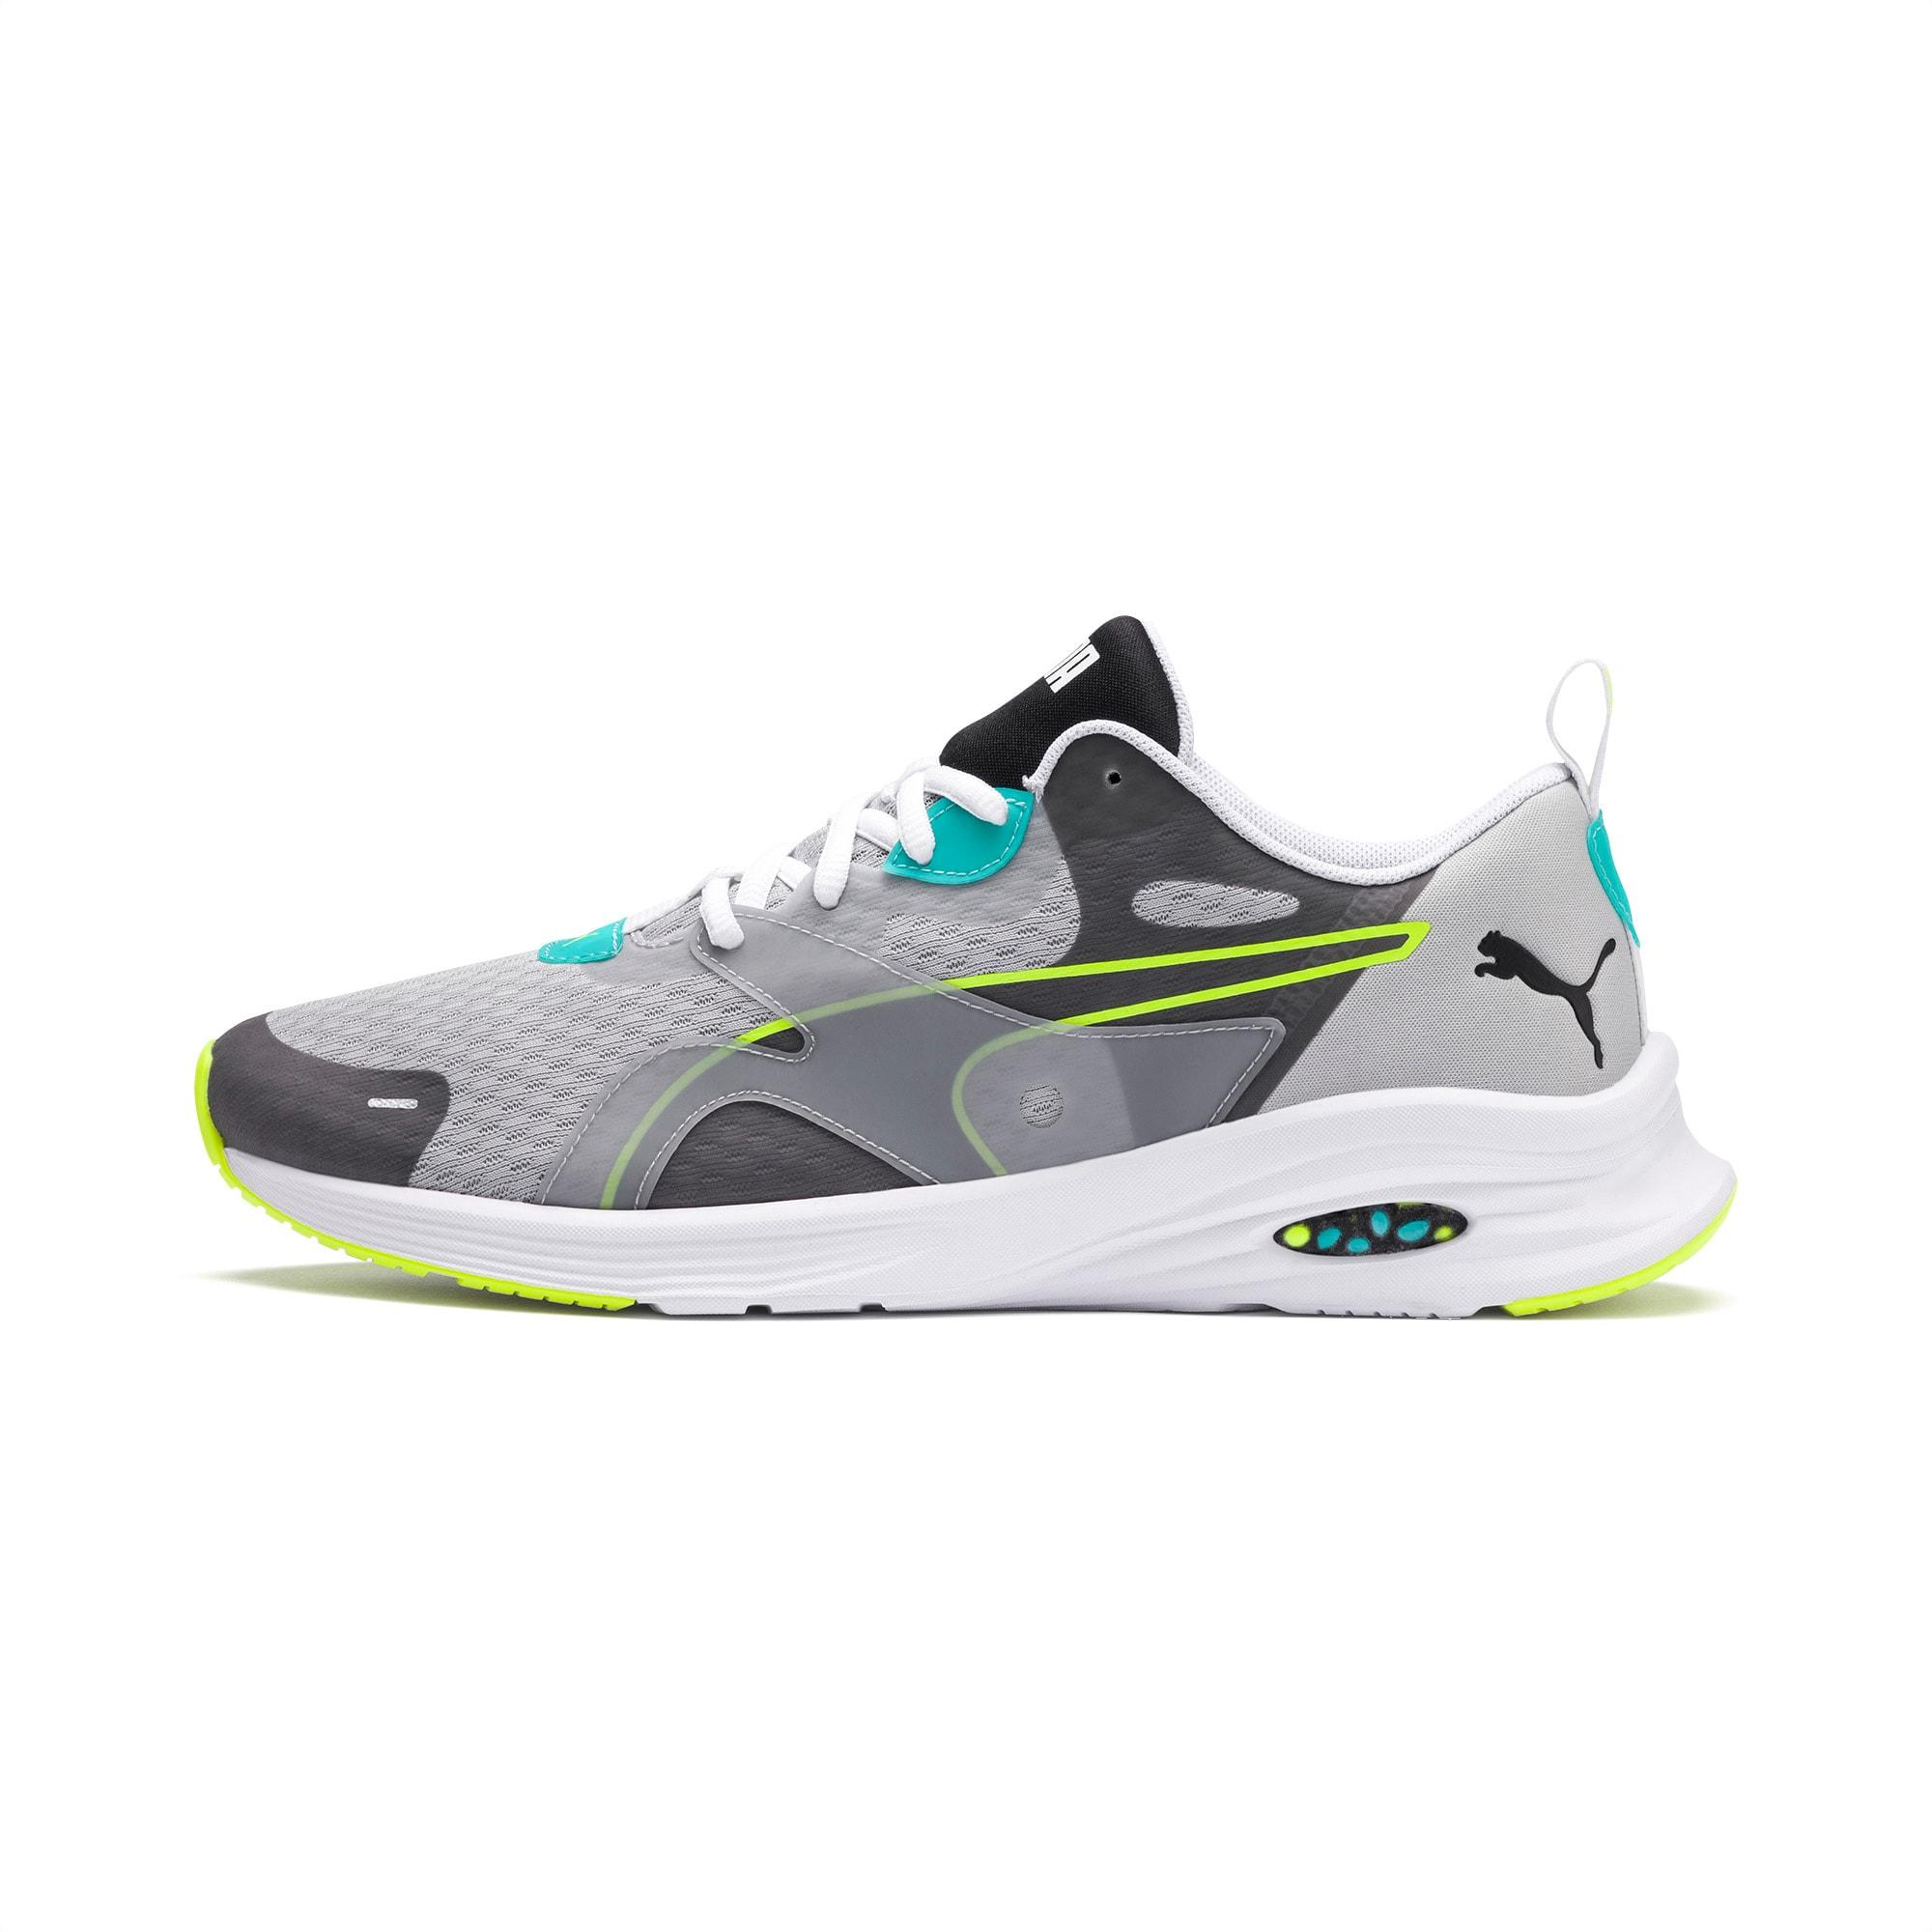 PUMA Rubber Hybrid Fuego Men's Running Shoes in Blue for Men - Lyst